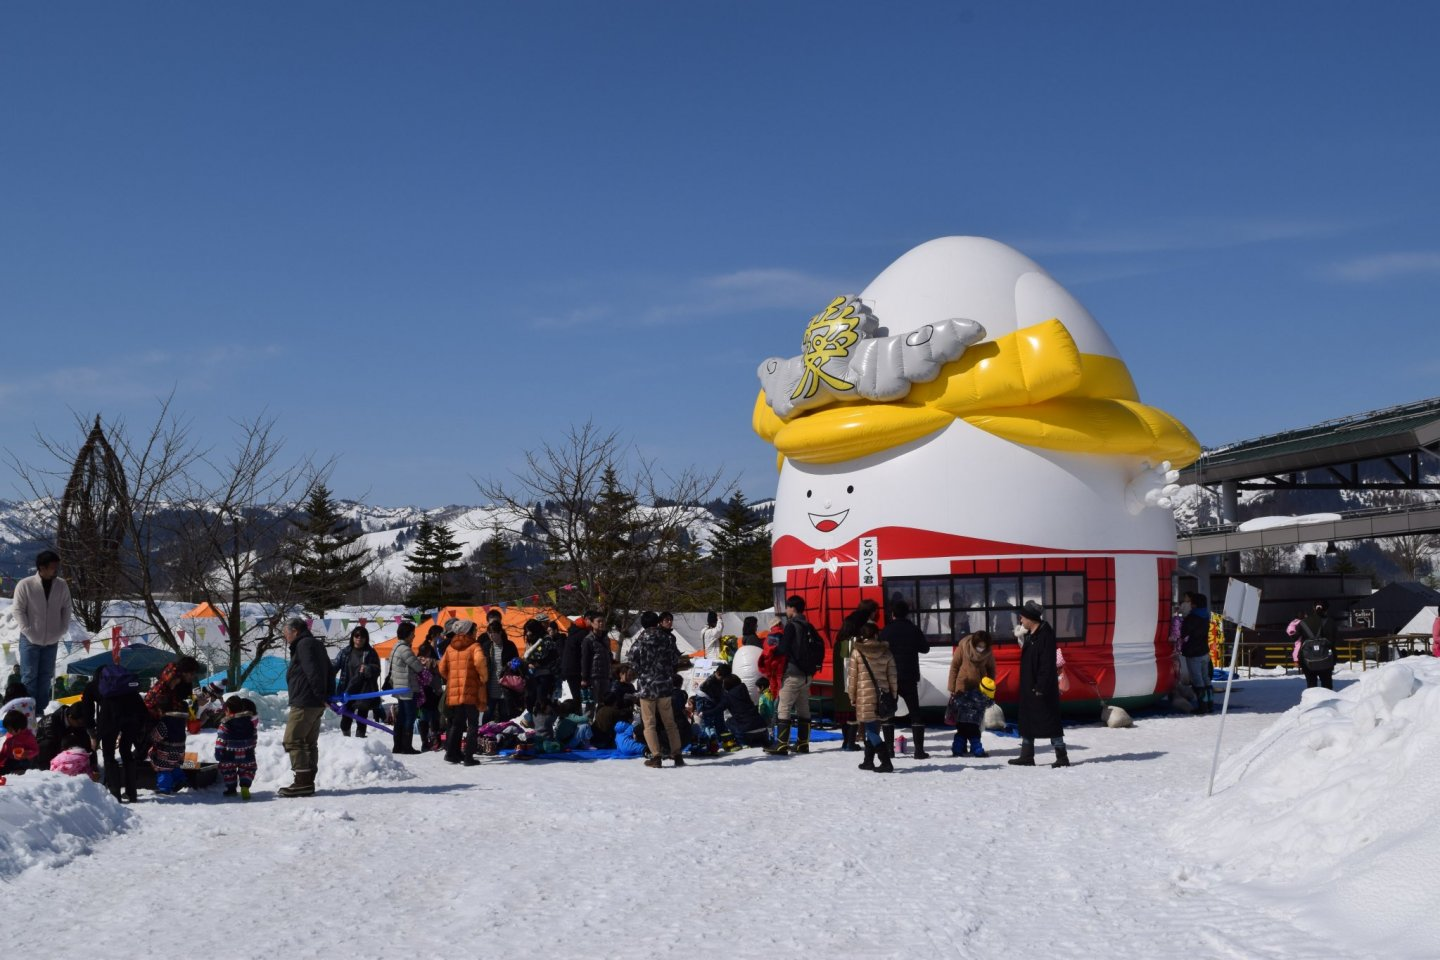 A bouncy house in the snow for kids to enjoy